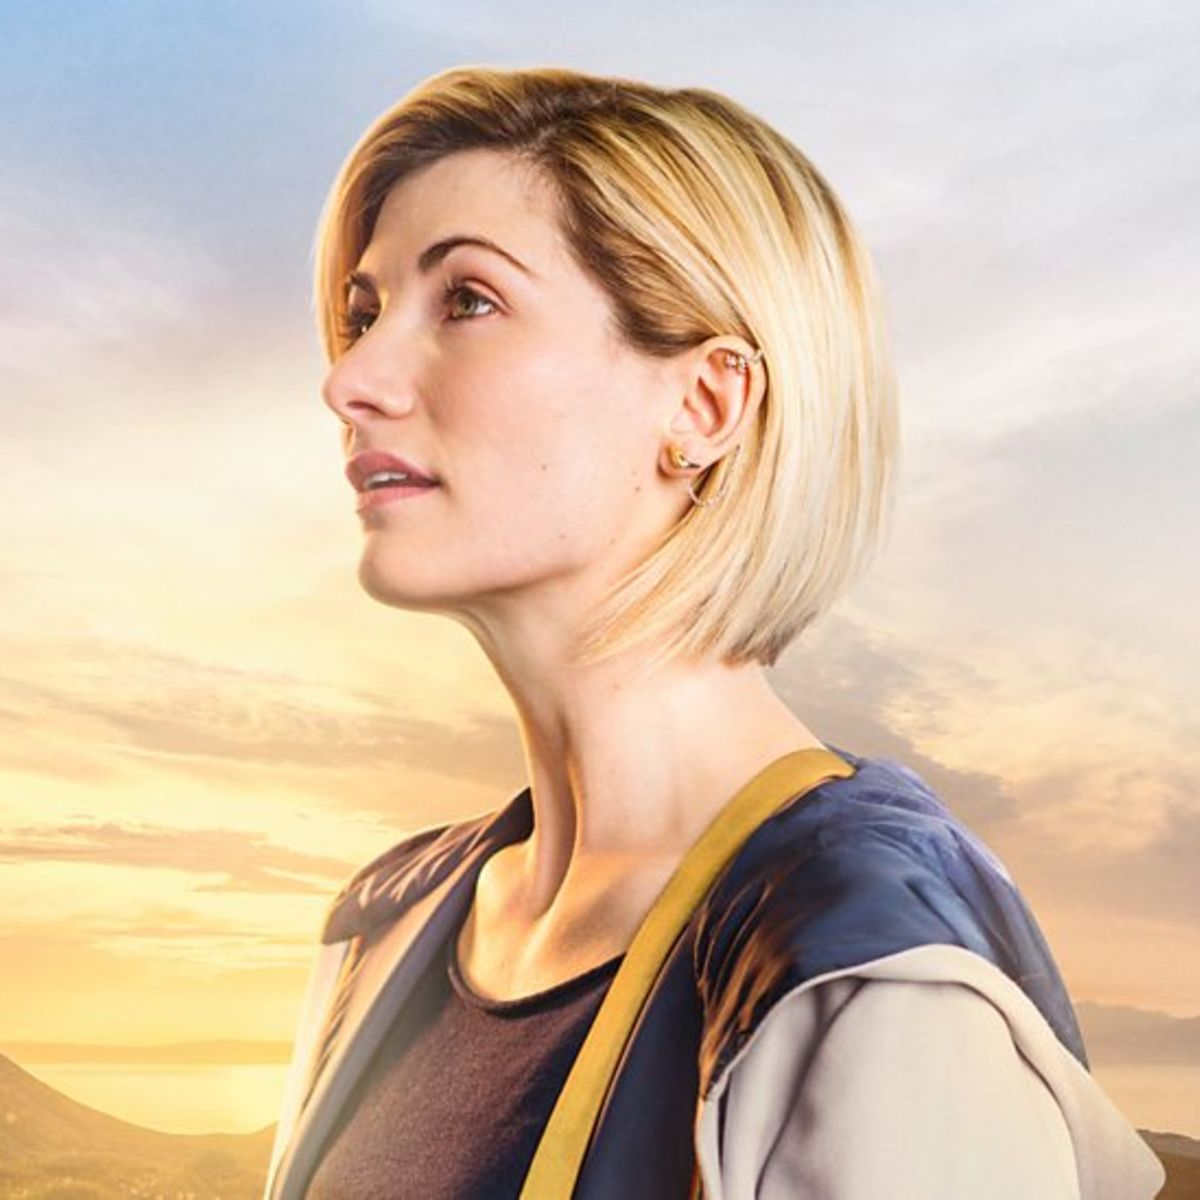 Jodie Whittaker leads the charge in new Doctor Who series 11 trailer